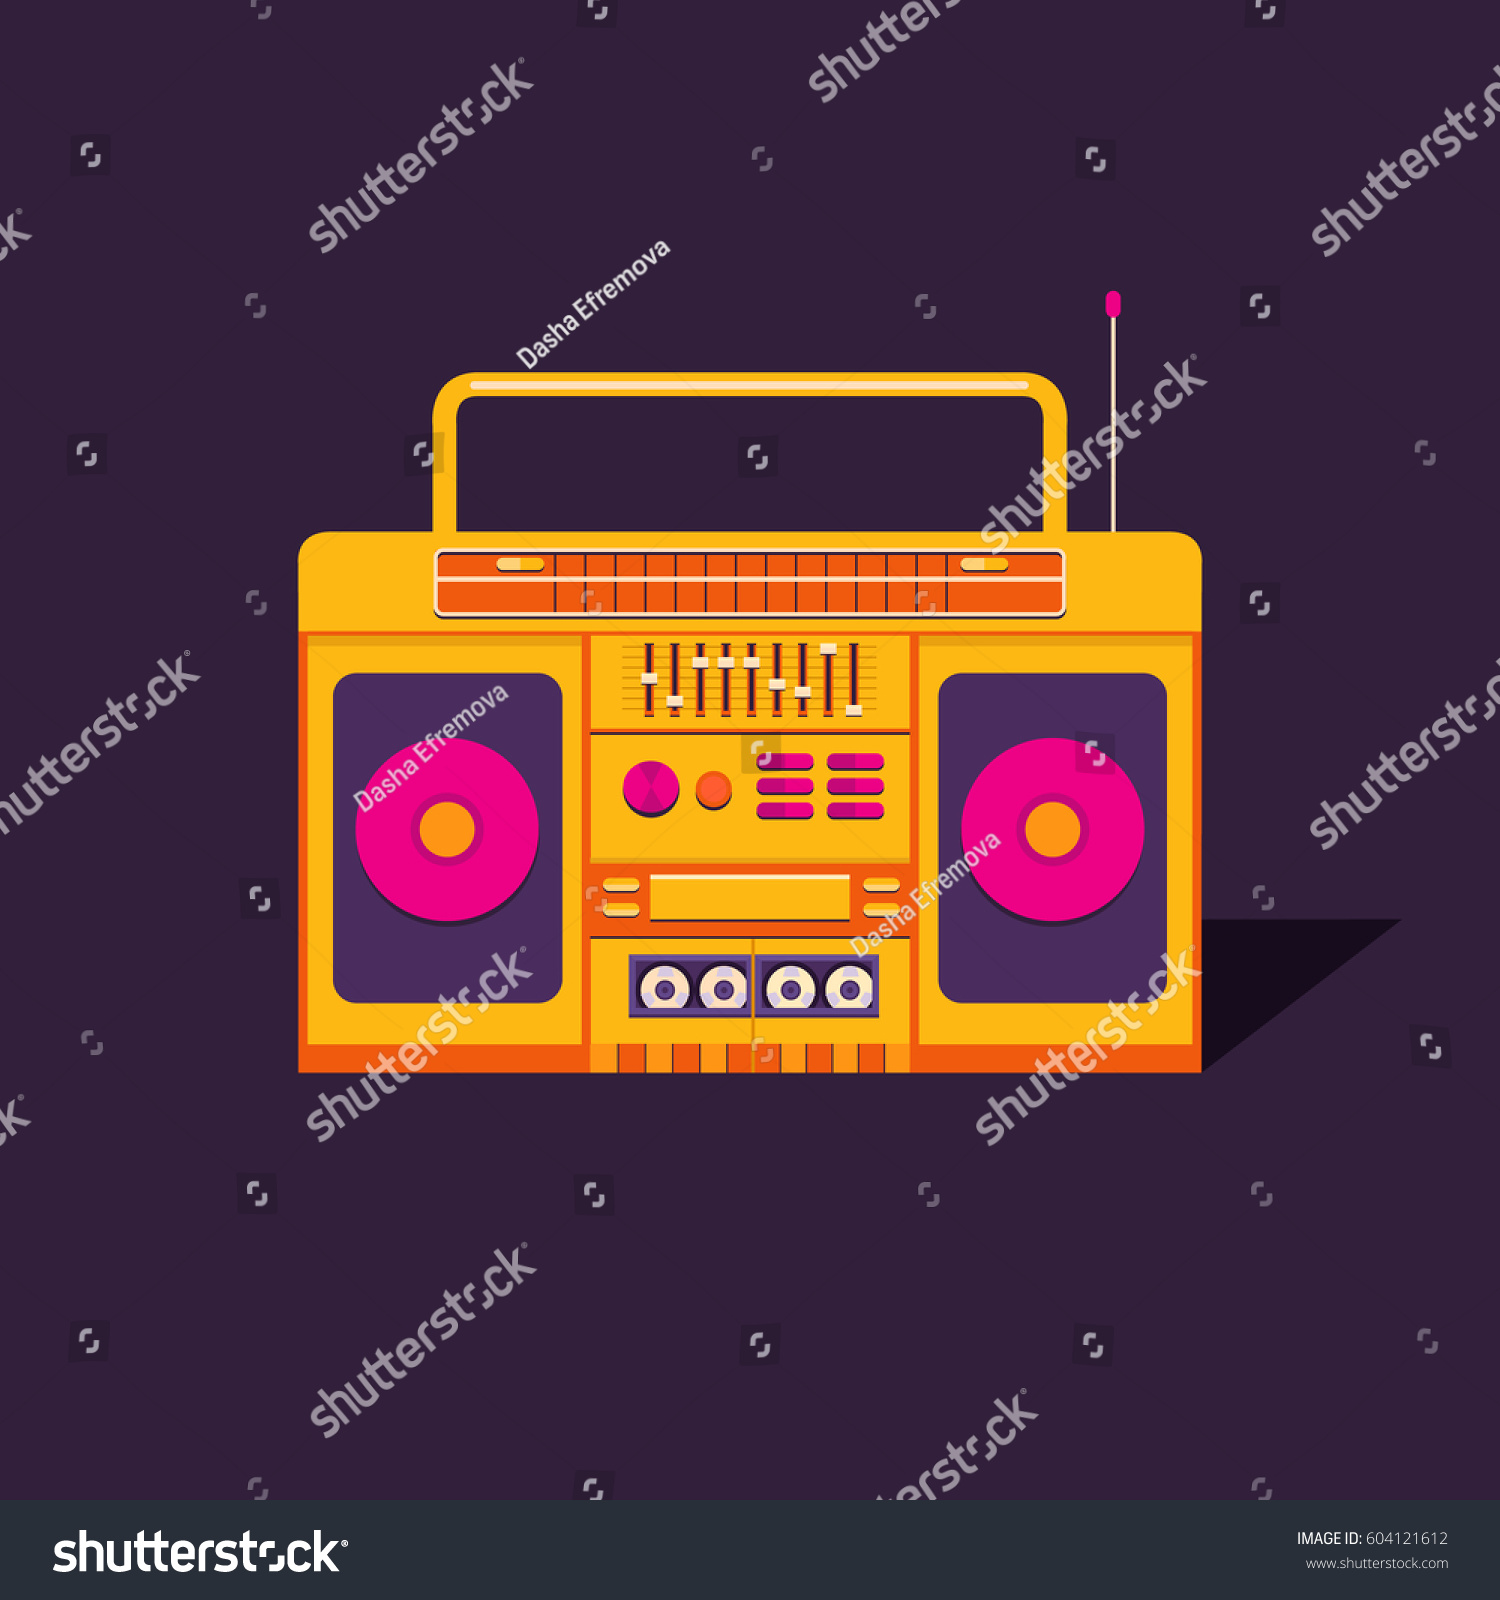 Illustration Vintage Cassette Tape Recorder Nostalgia Stock Vector 604121612 - Shutterstock